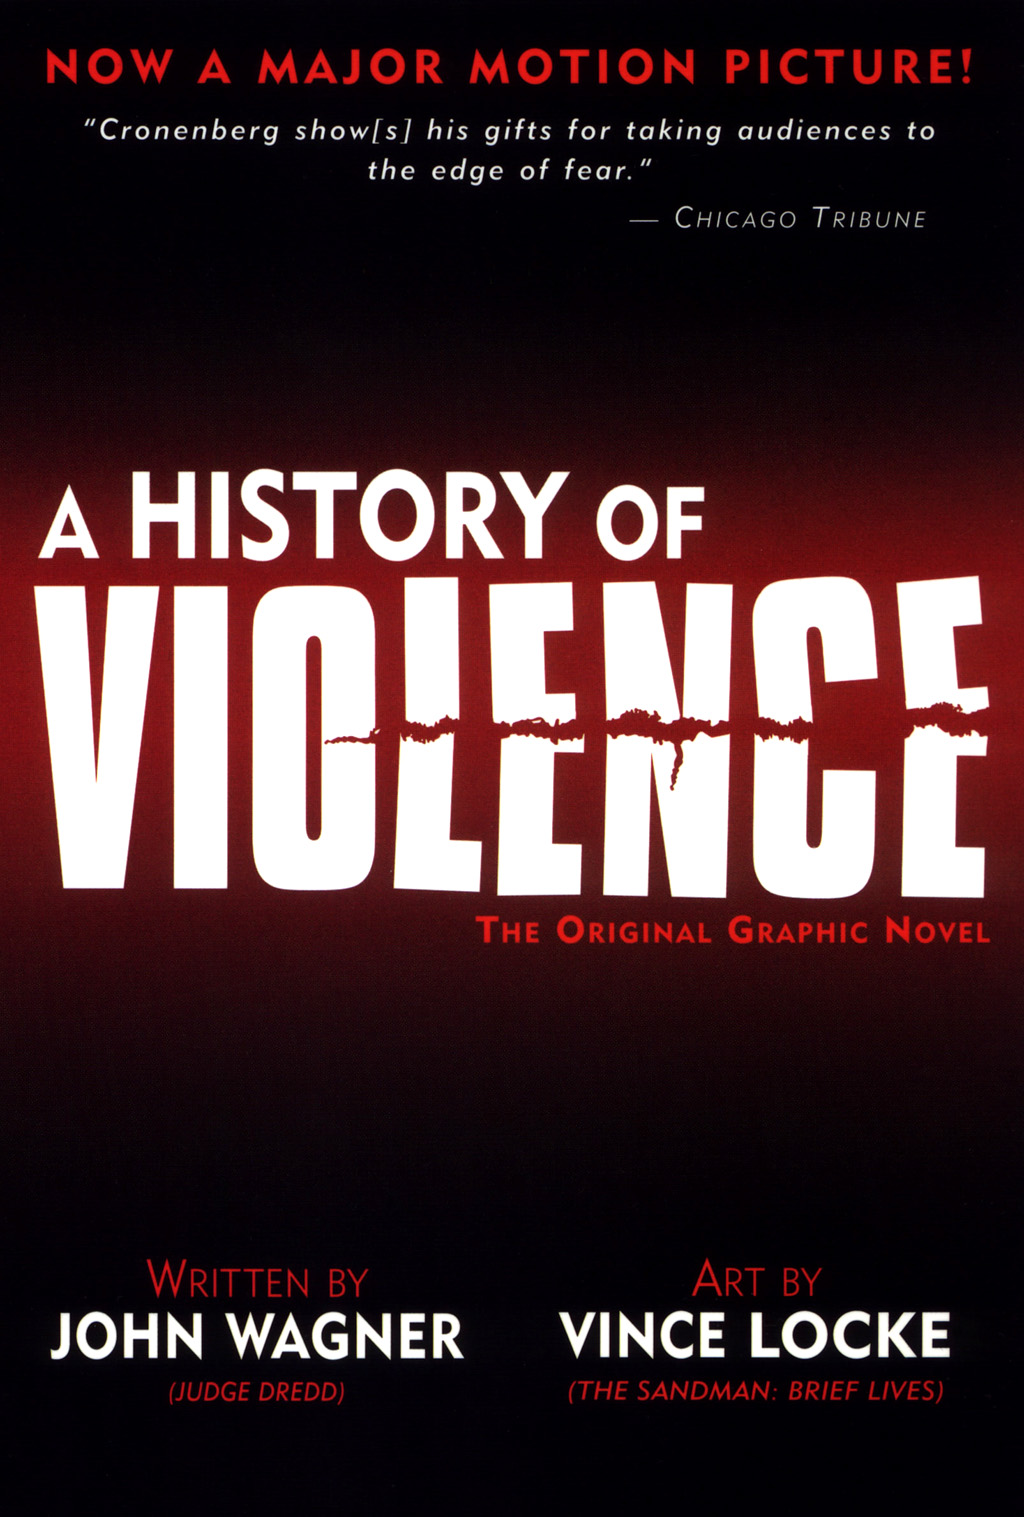 A History of Violence Full Page 1